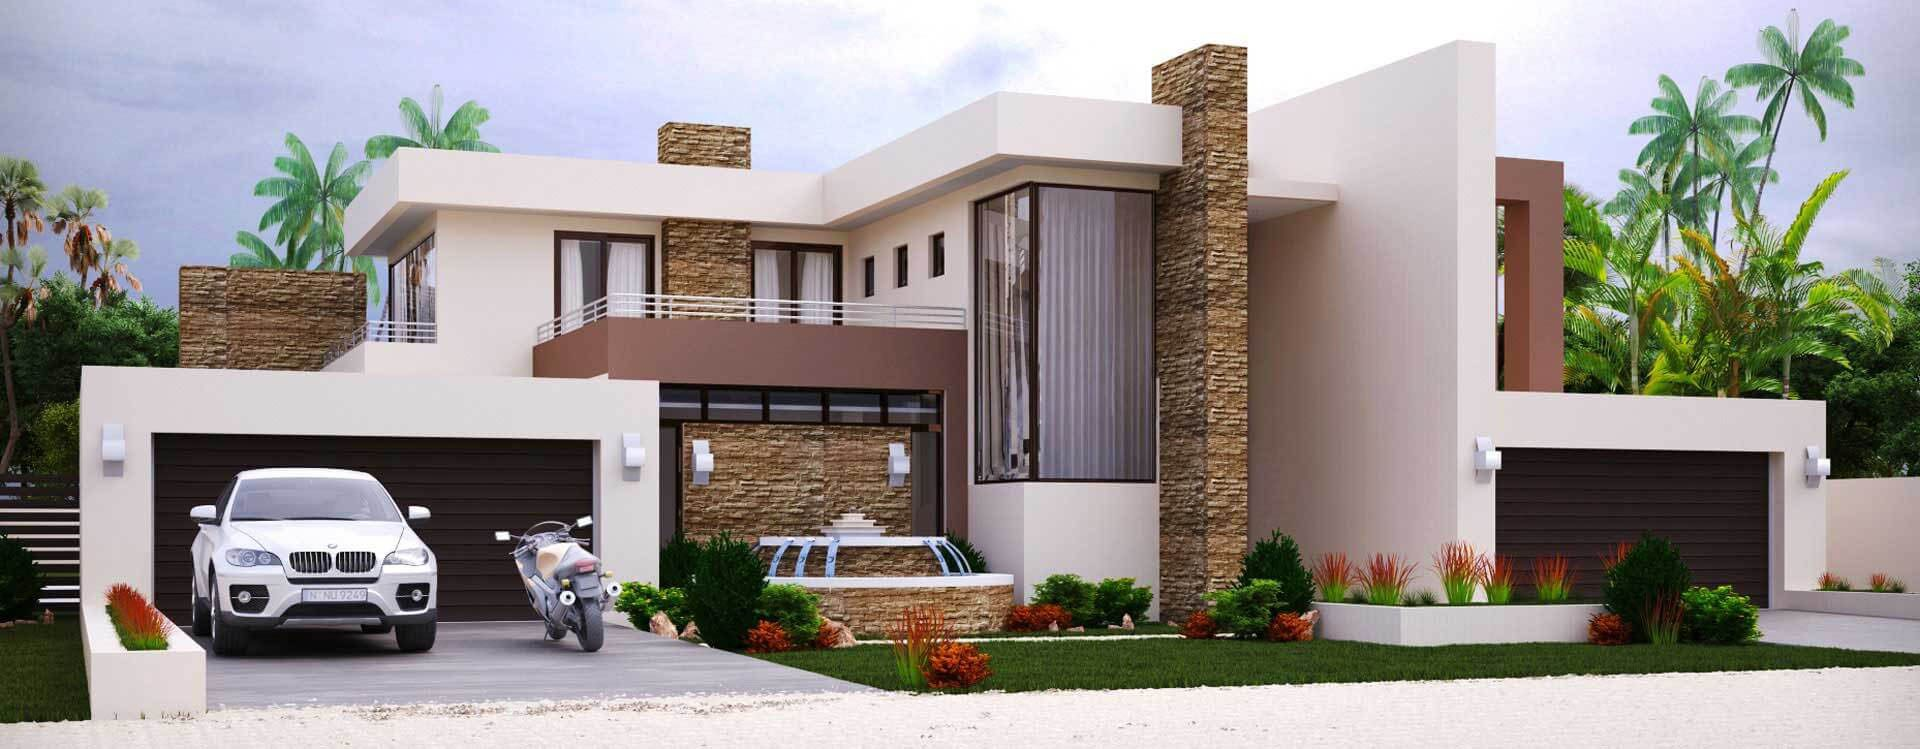 4 bedroom house plan m497d modern house plan 497sqm double storey home design